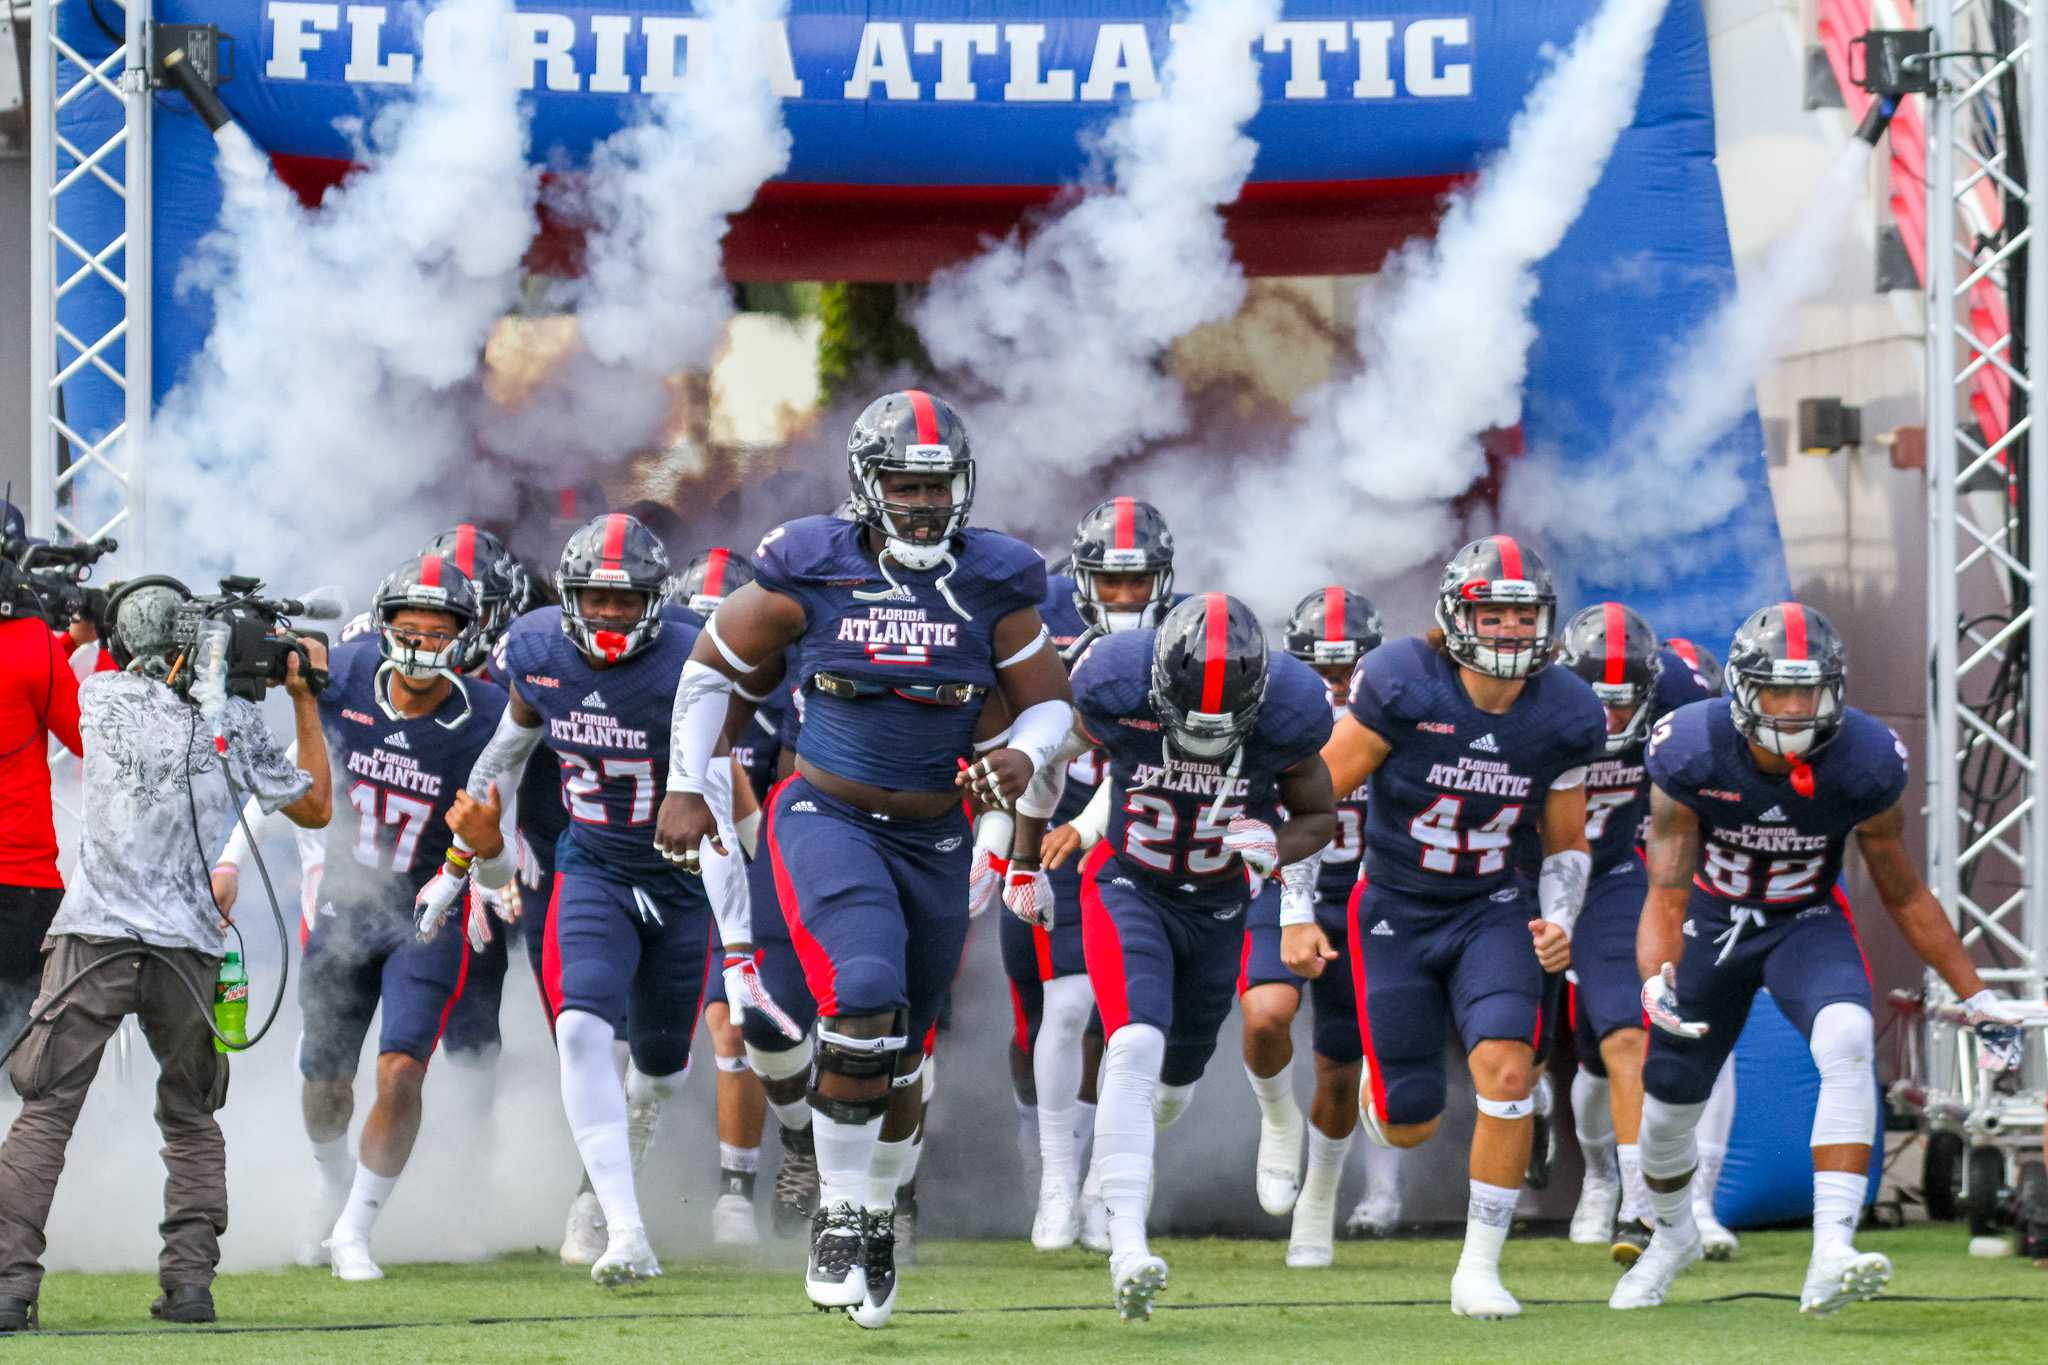 Owls players run out before Saturday's 33-17 loss versus Marshall. FAU is now 0-3 all time versus the Thundering Herd. Photo by Mohammed Emran|Asst. Creative Director